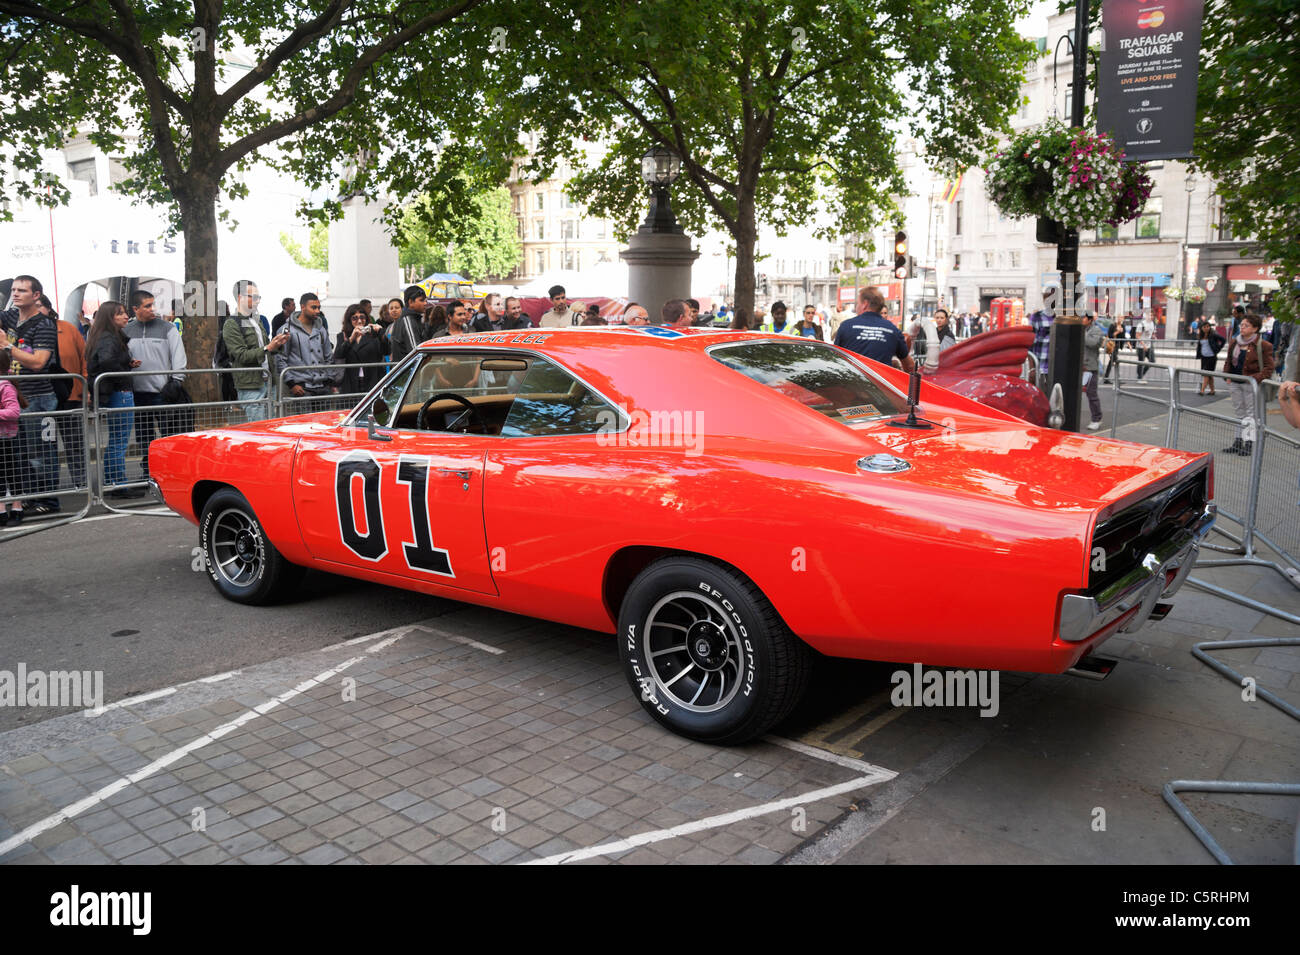 London Uk General Lee Car From The Dukes Of Hazzard Tv